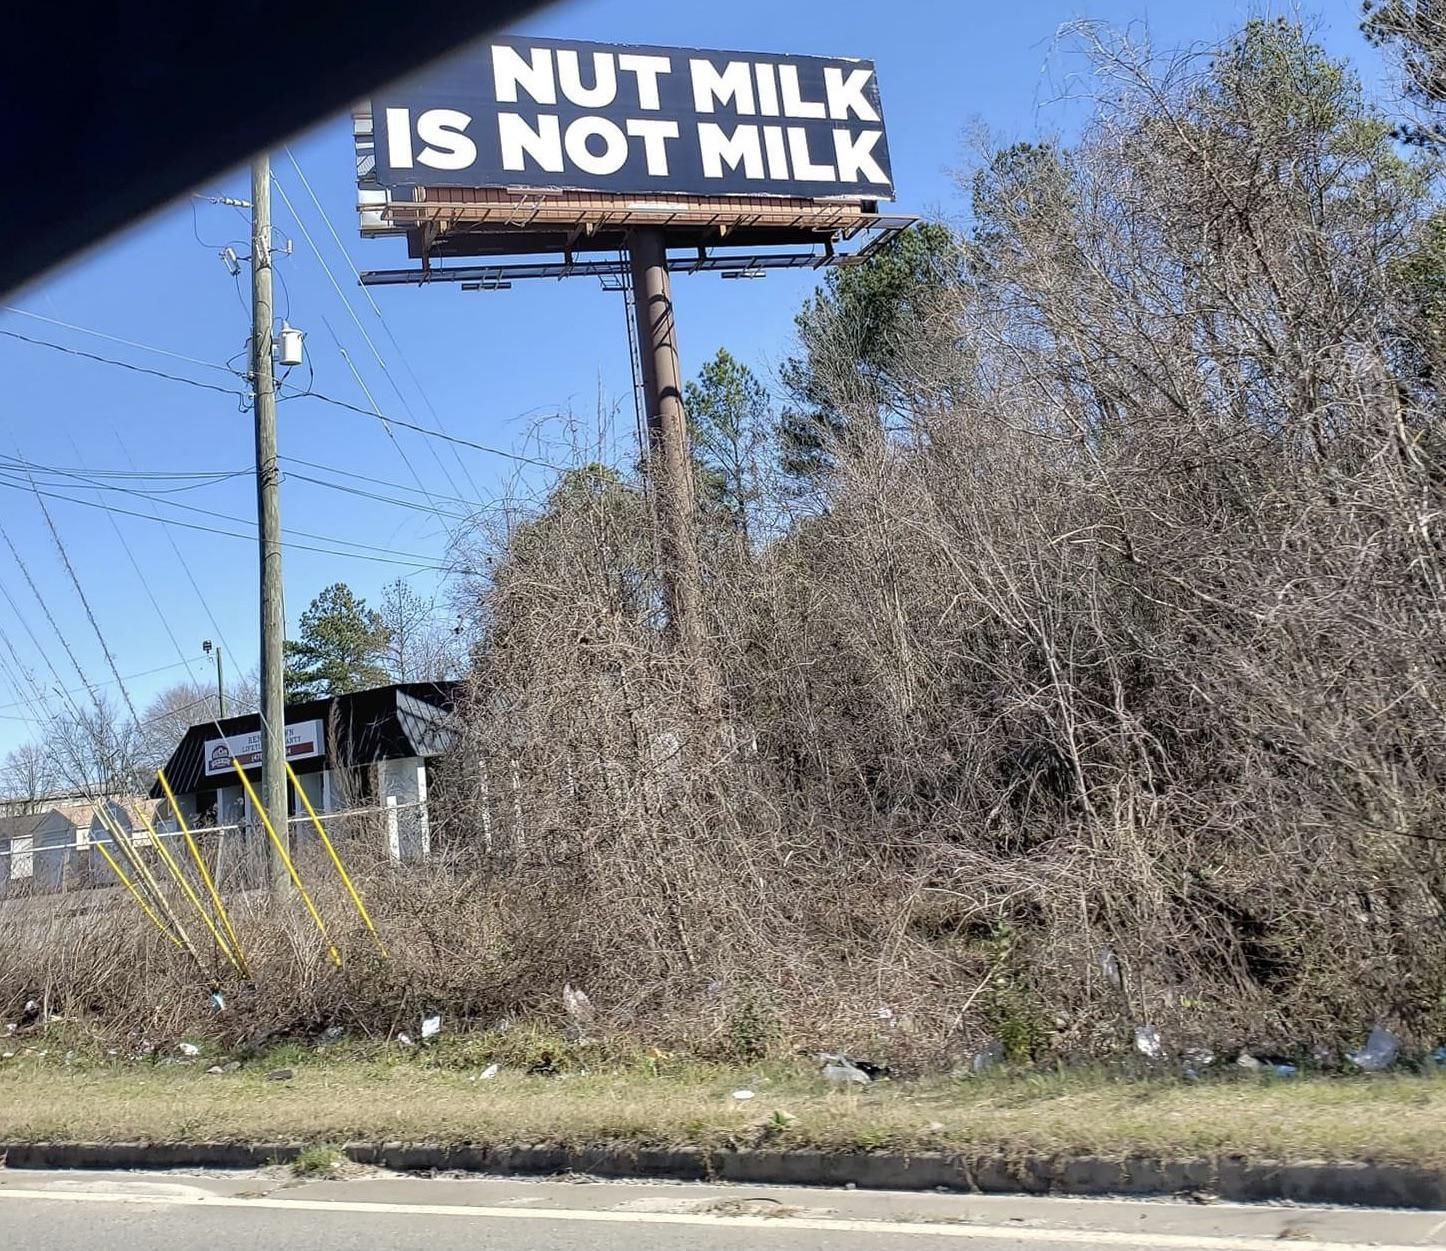 someone was passionate enough to fund a billboard for this cause